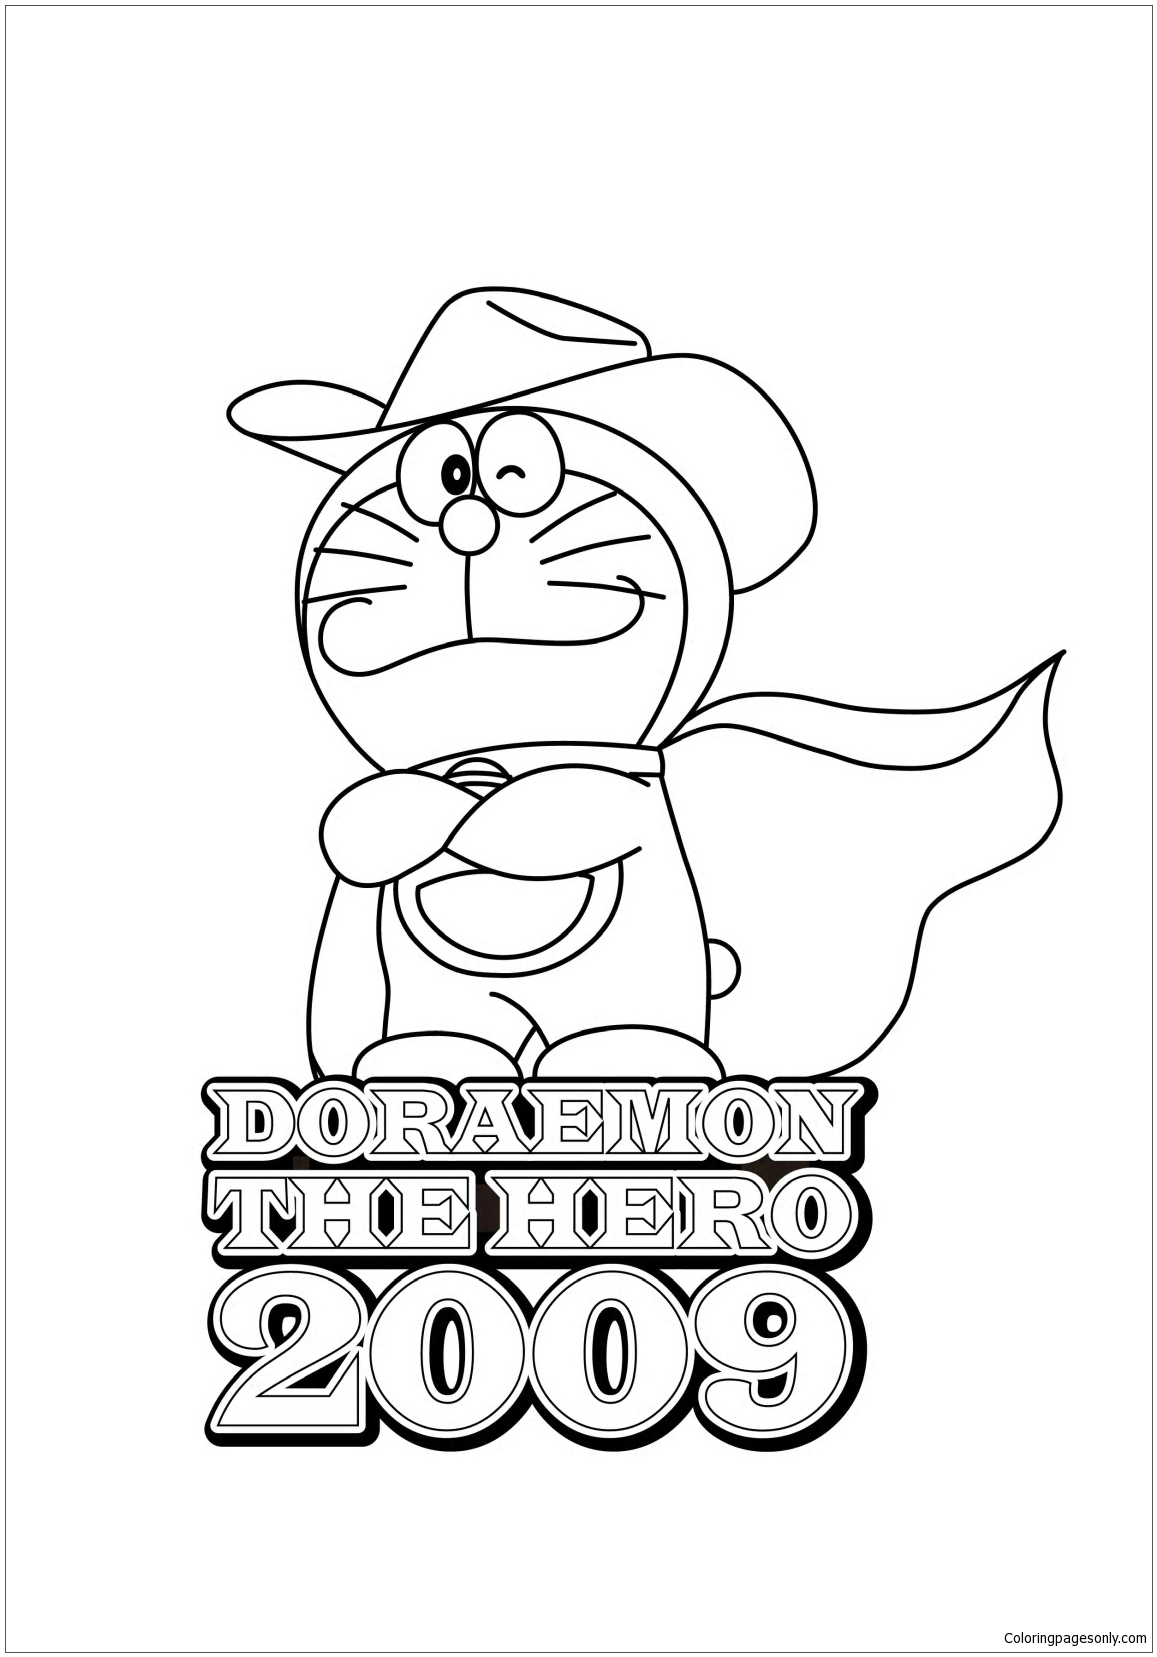 Doraemon The Hero 2009 Coloring Page